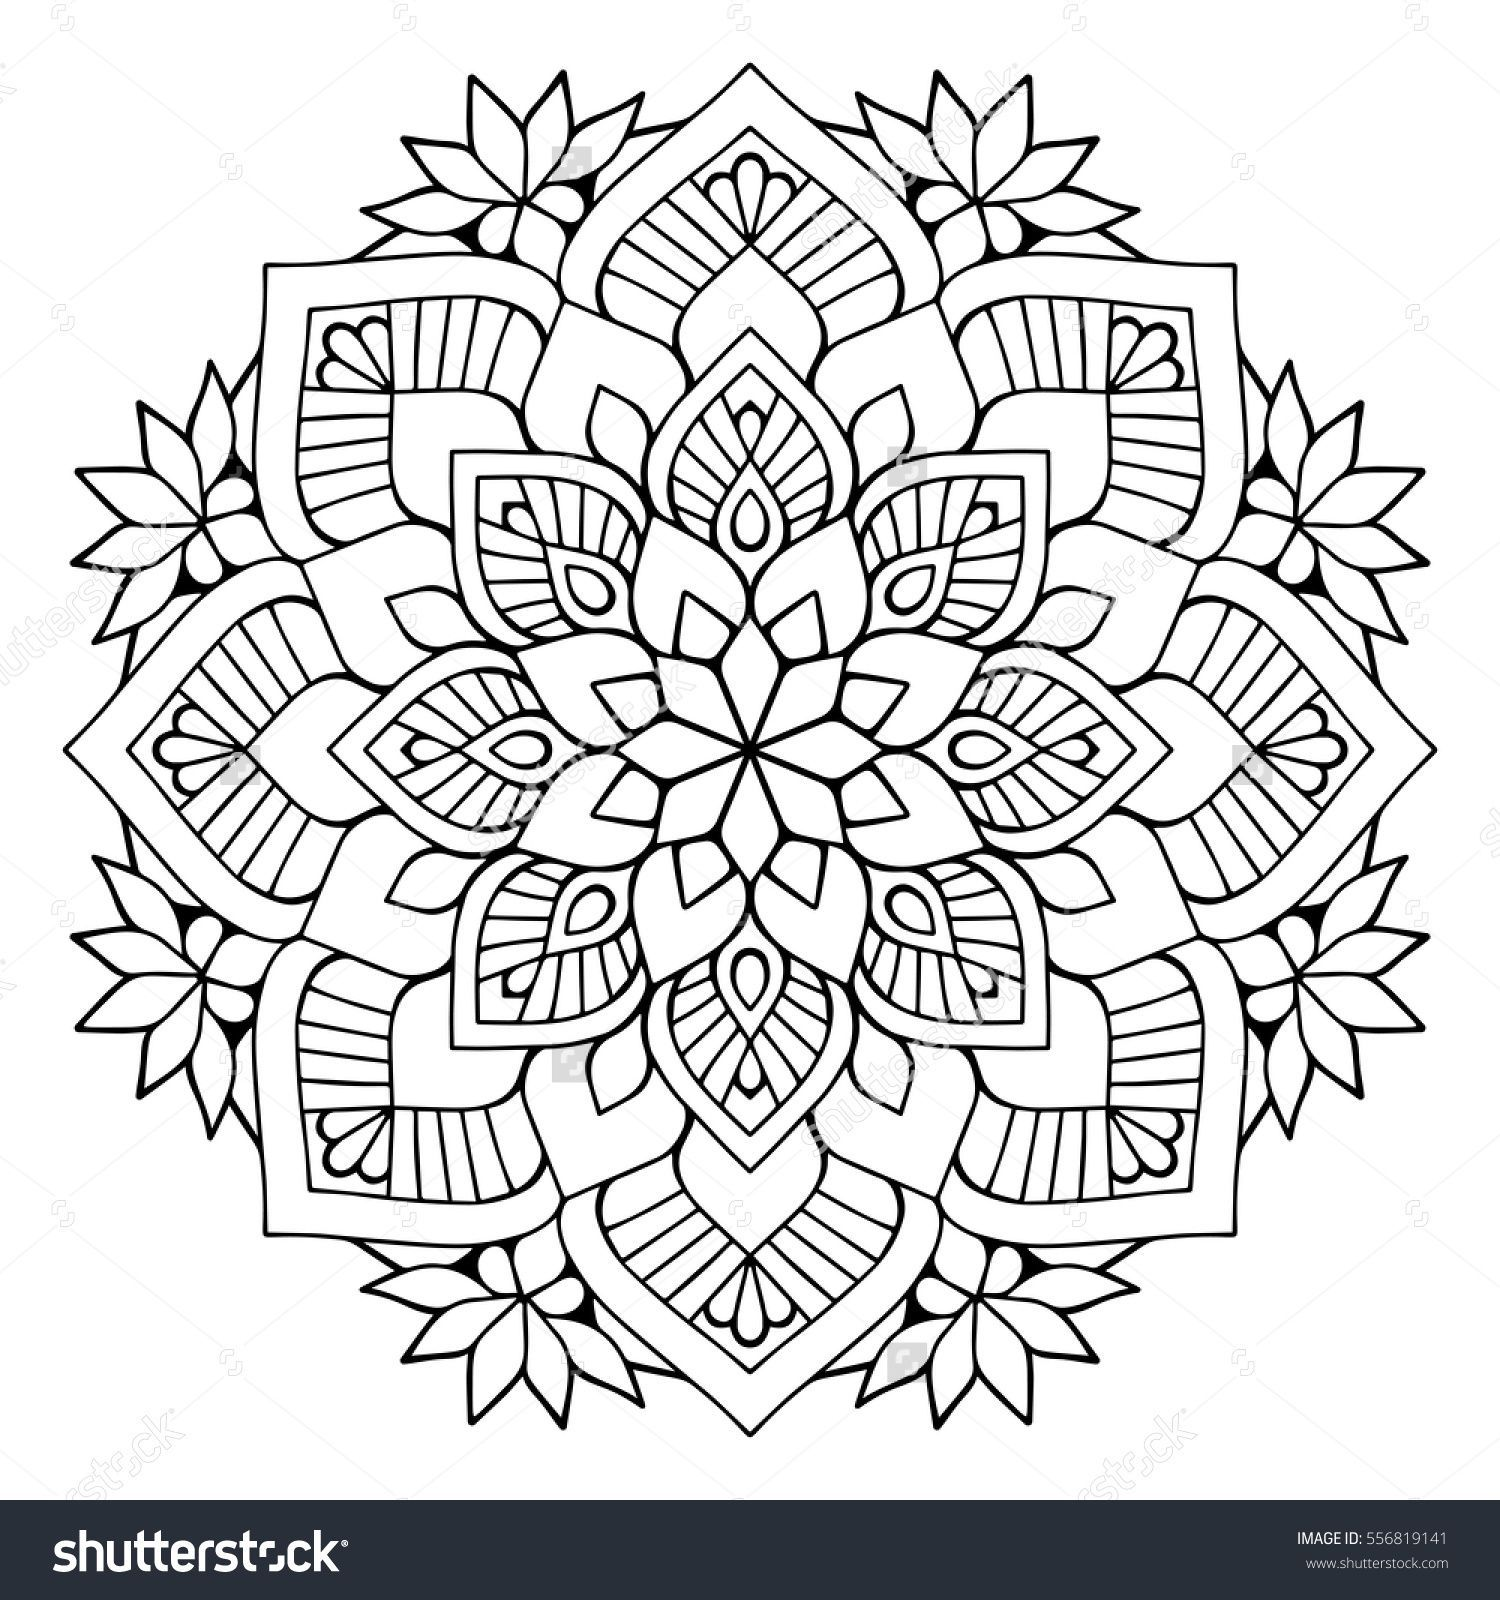 Pin By Wynell Anderson On Mandala Art In 2021 Mandala Coloring Pages Mandala Coloring Books Mandala Design Art